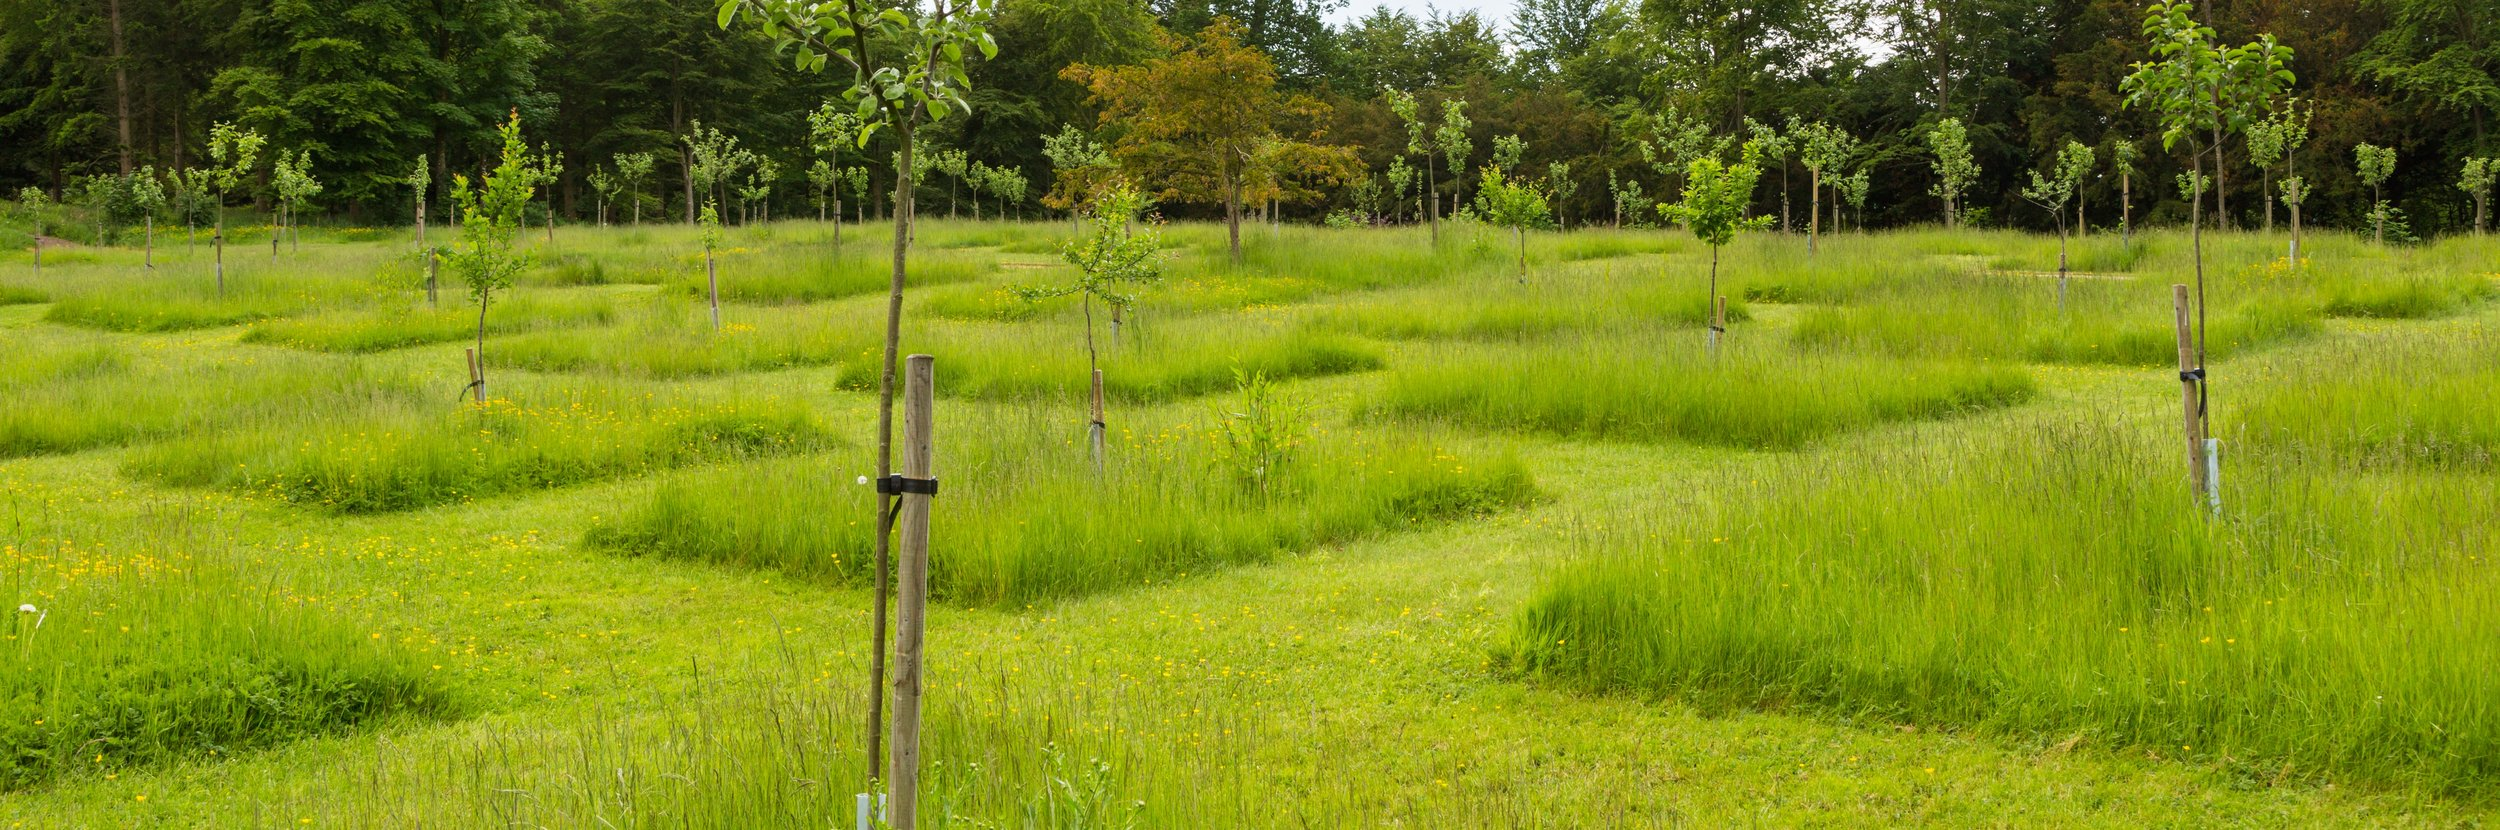 Squares of Unmown Meadow in the Orchard at Lowther Castle. Image: Chris Denning/Verve Garden Design.